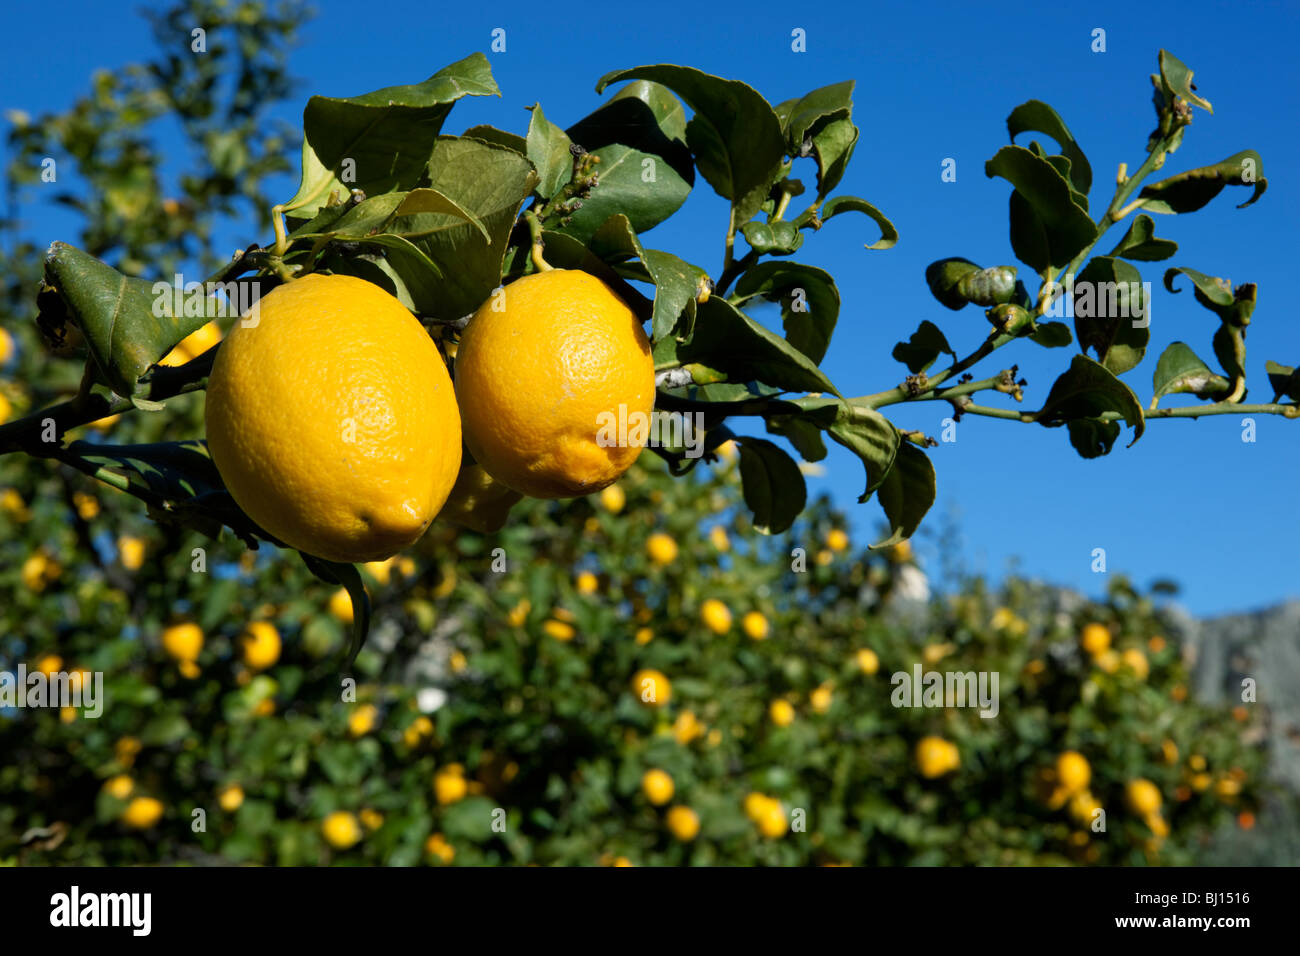 Citrons sur arbre Photo Stock